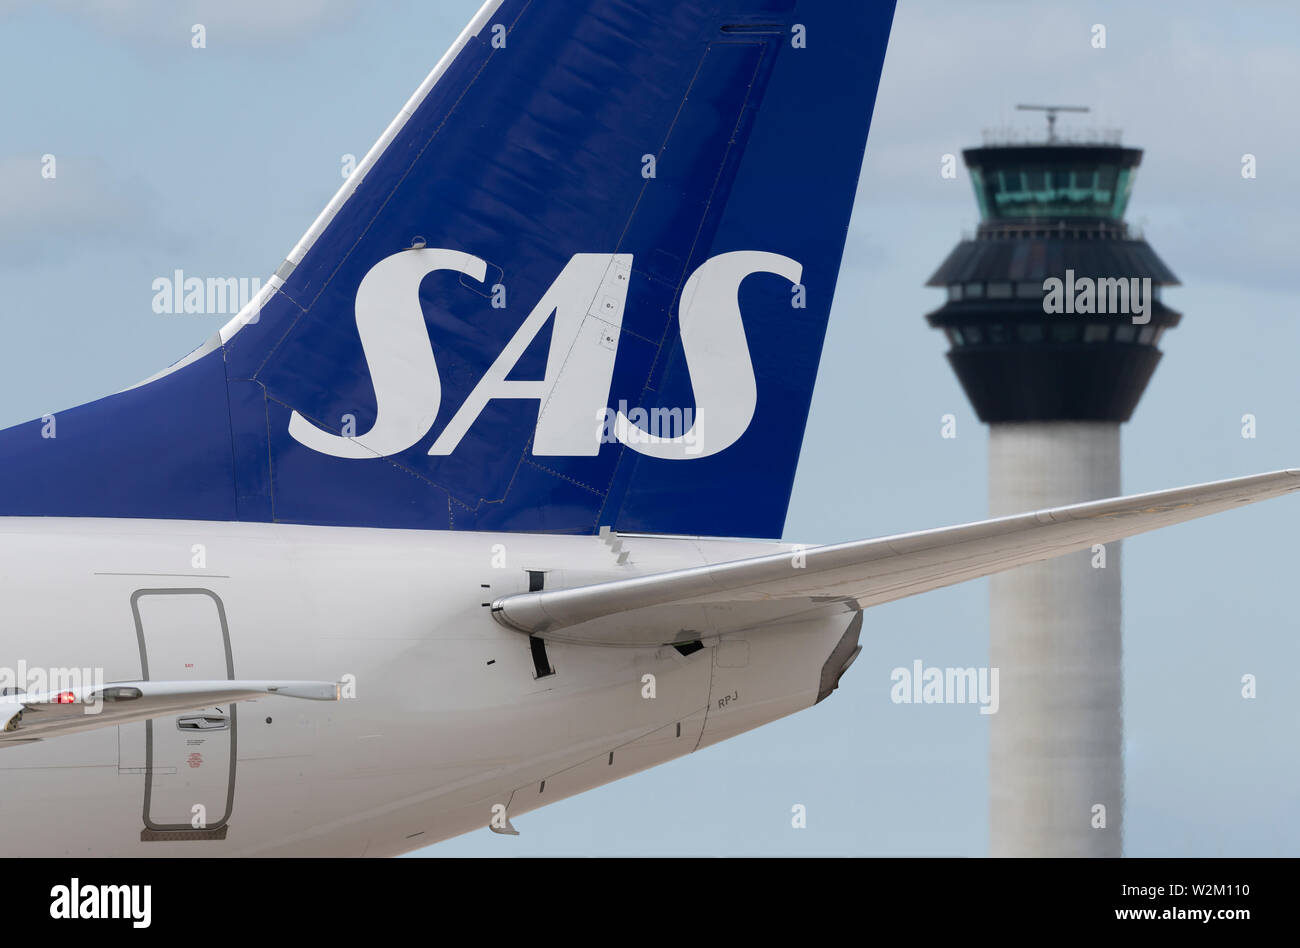 The tailfin of a SAS airliner taxiing along the runway in front of the control tower at Manchester Airport. - Stock Image